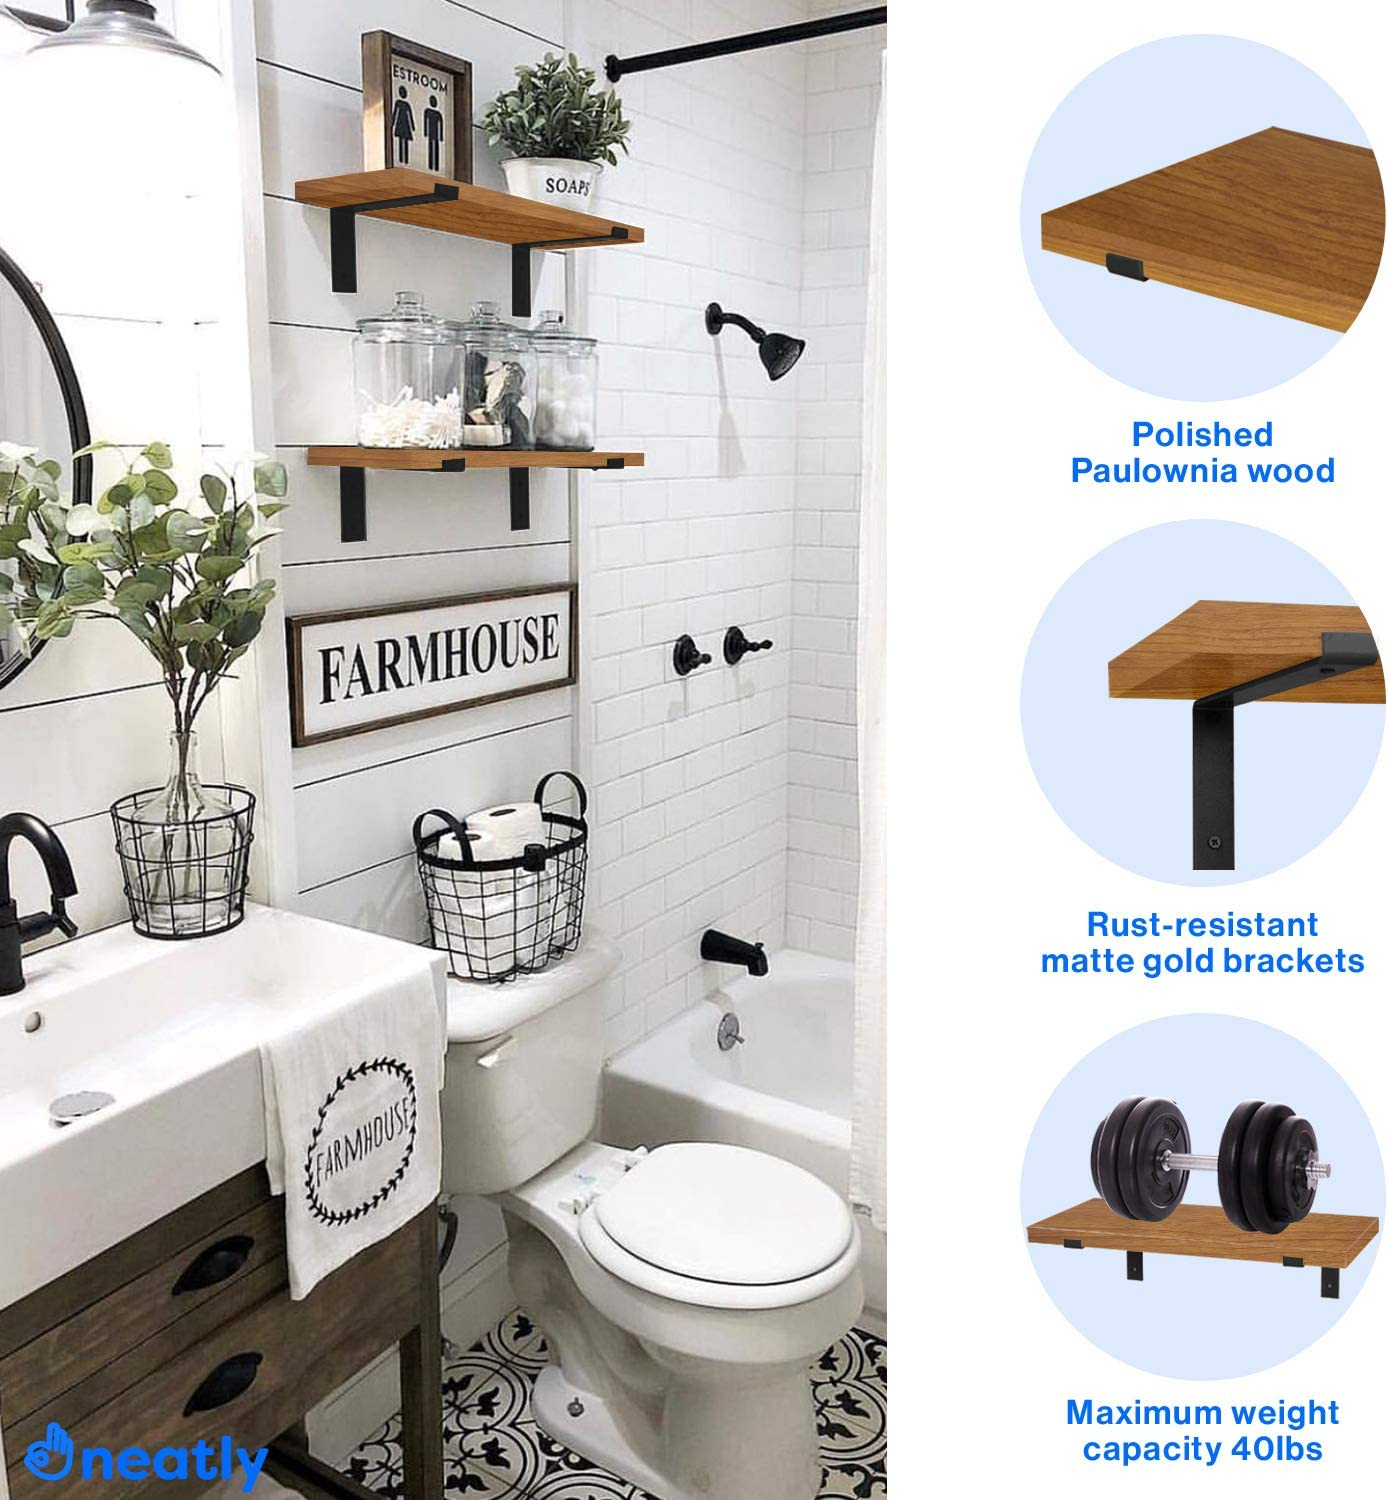   by NEATLY Bathroom or Bedroom Elegant Wall Decorations for Living Room Floating Shelves for Wall Decor Set of 2 Modern Rustic Wall Shelves Rustic Wood Farmhouse Aesthetic Room Decor DIY